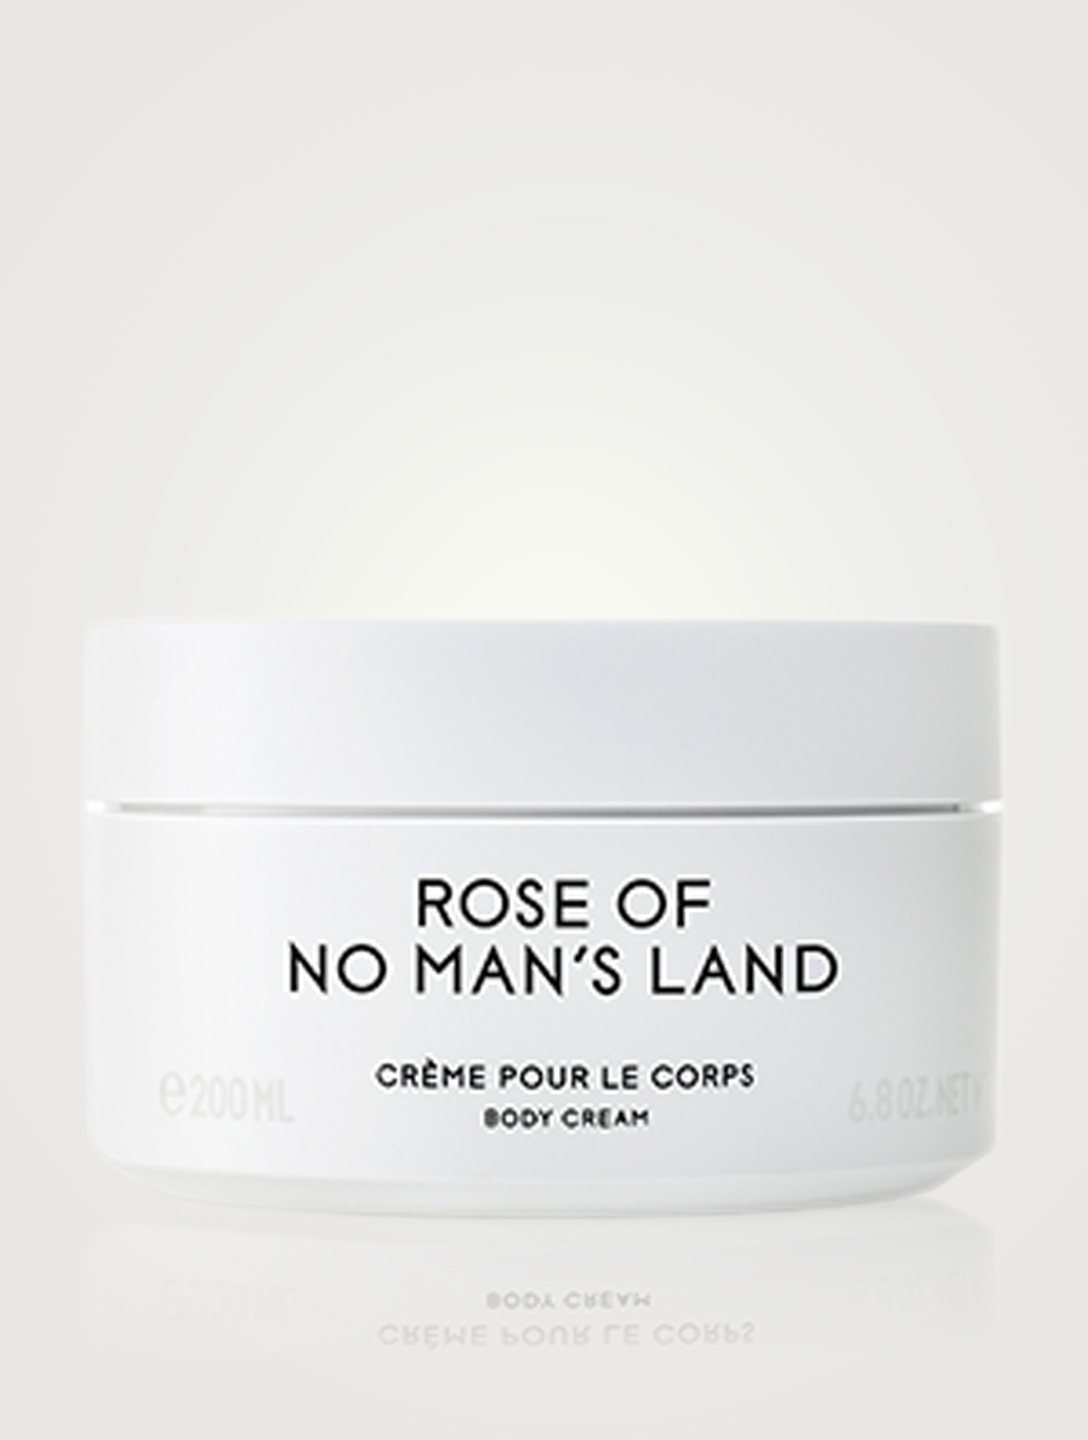 BYREDO Rose of No Man's Land Body Cream Designers